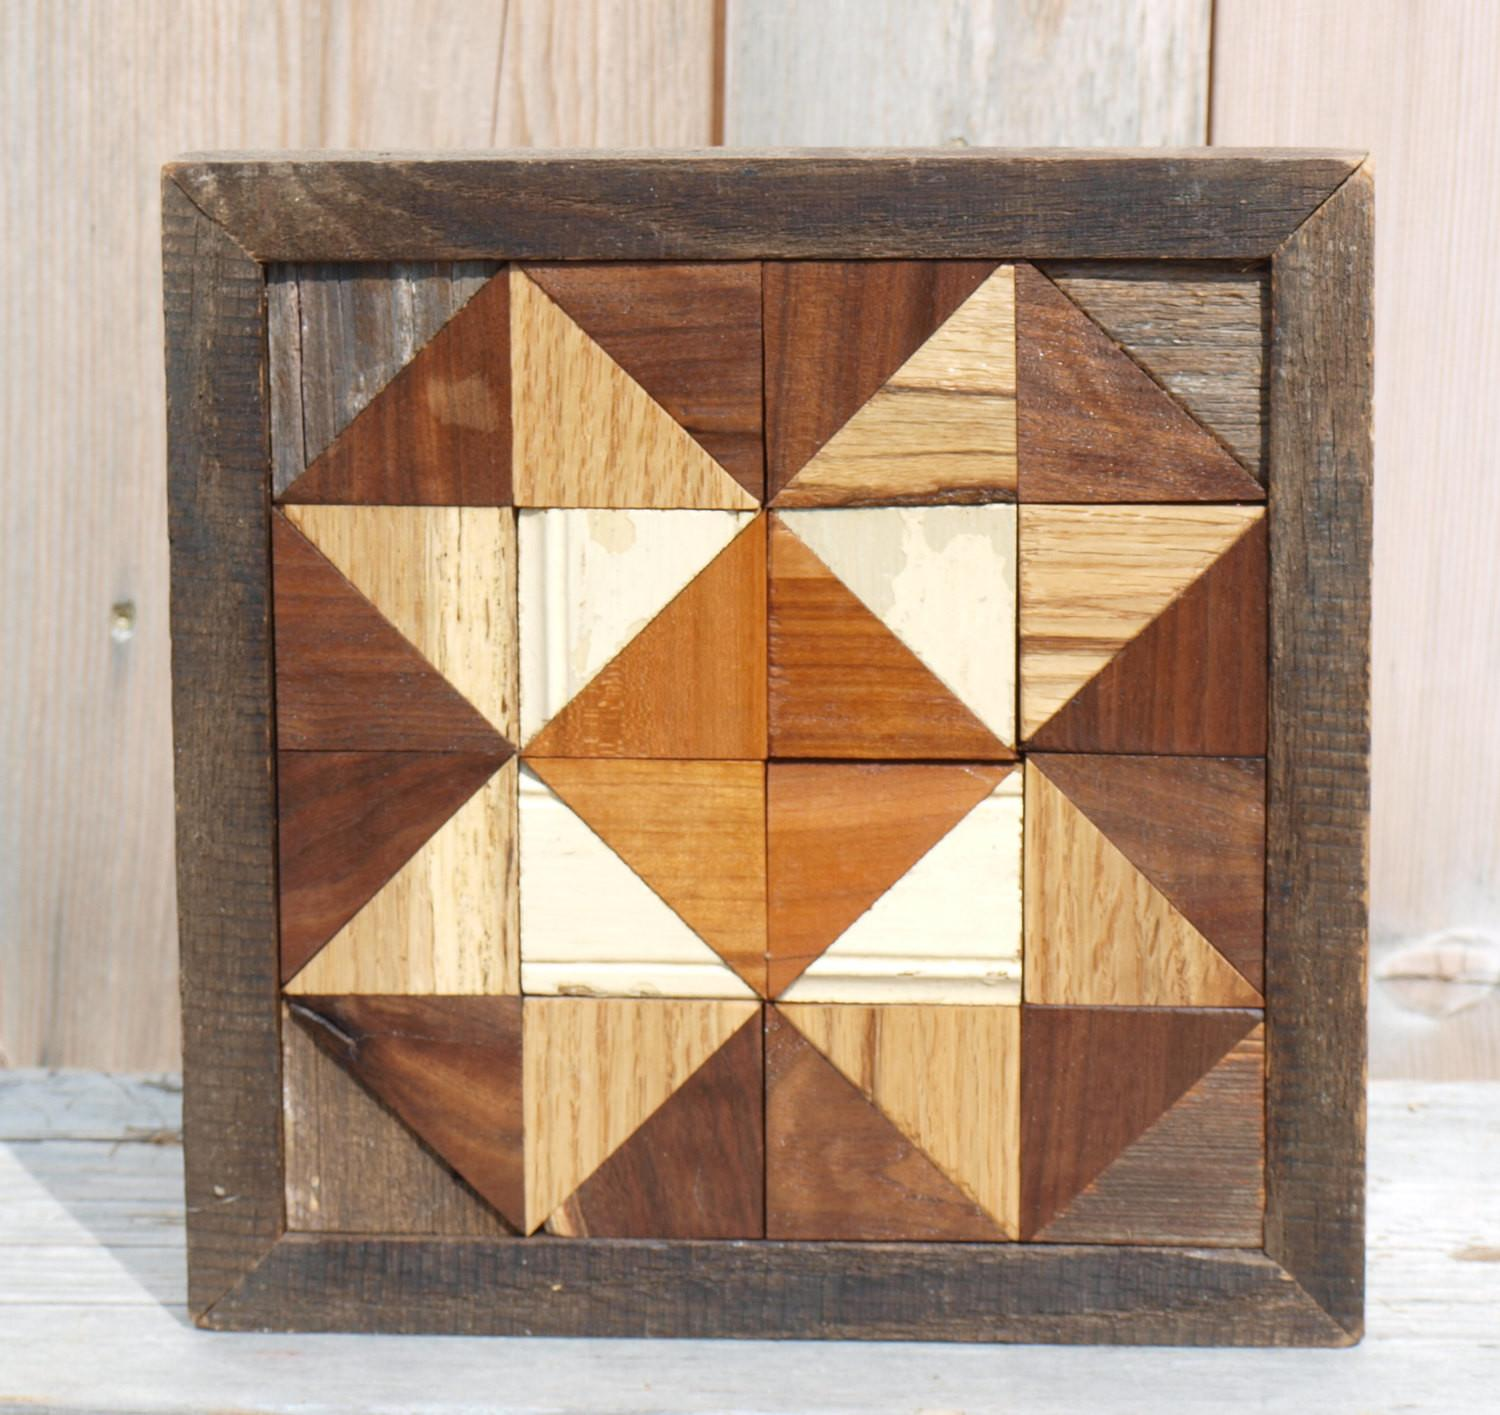 Salvaged Barn Board Wall Decor Geometric Art Wood